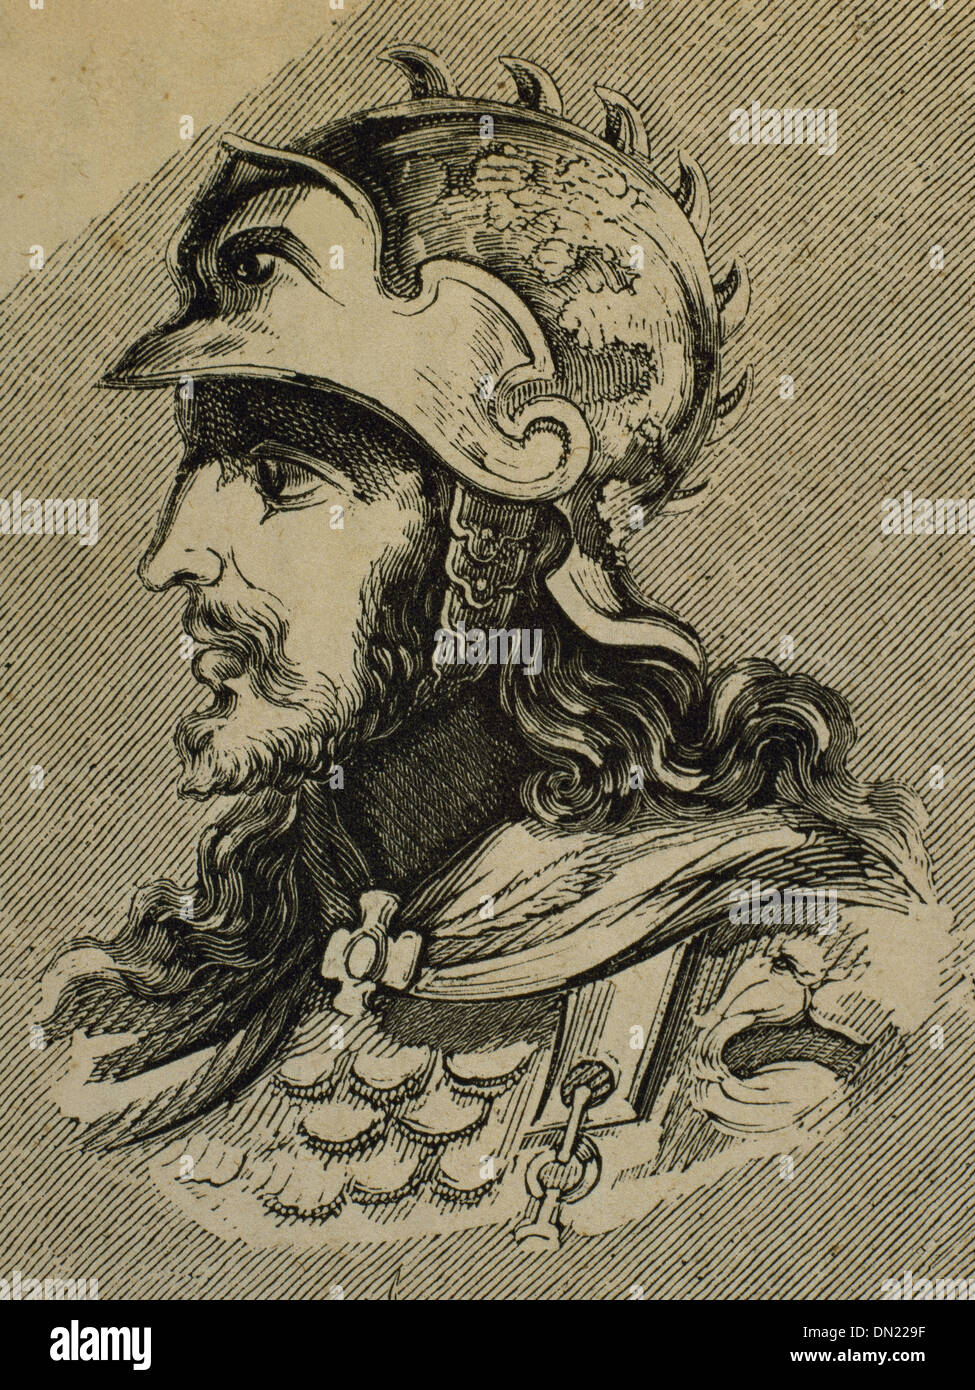 Ataulf. Germanic king of the Visigoths from 410-415. Engraving. - Stock Image